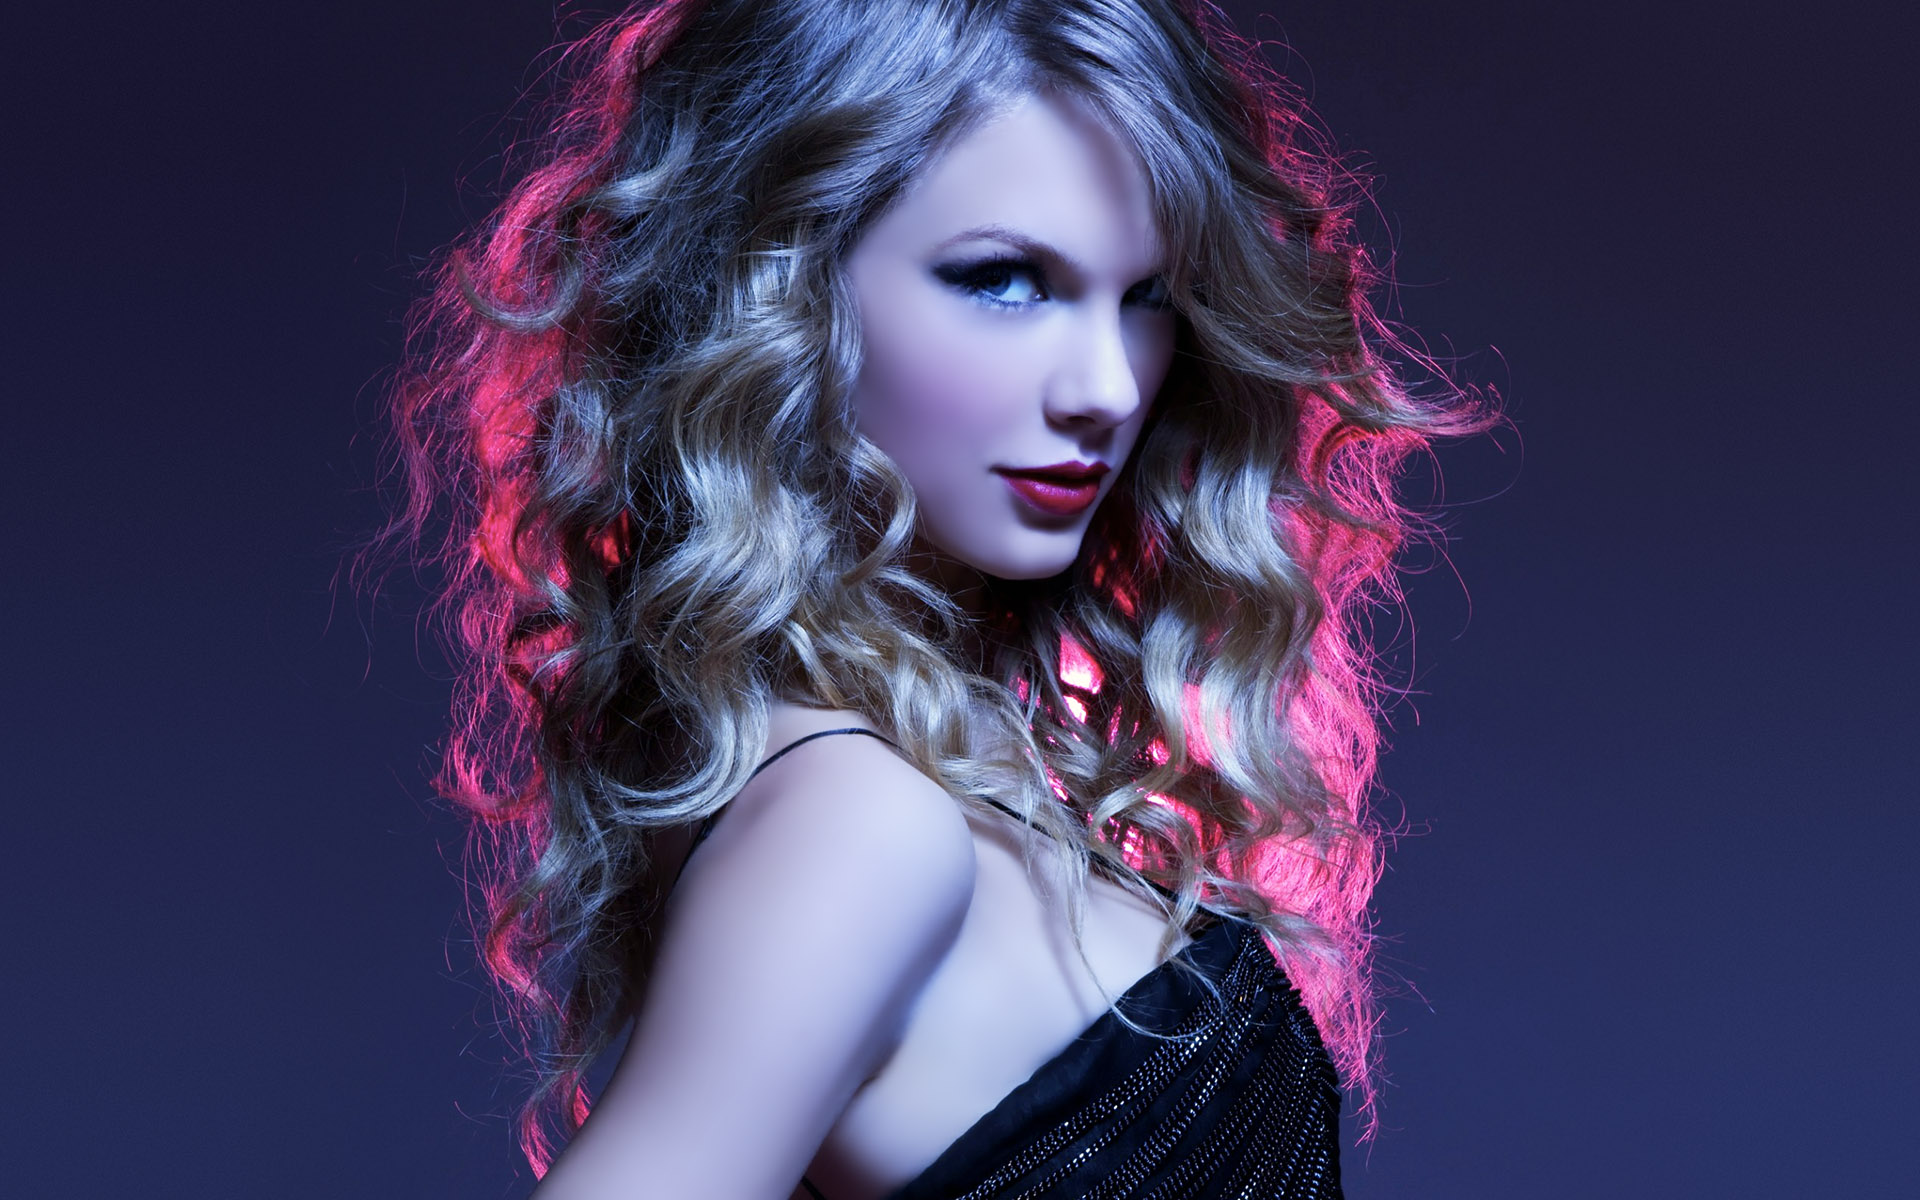 faithalia images taylor swift wallpaper hd wallpaper and background